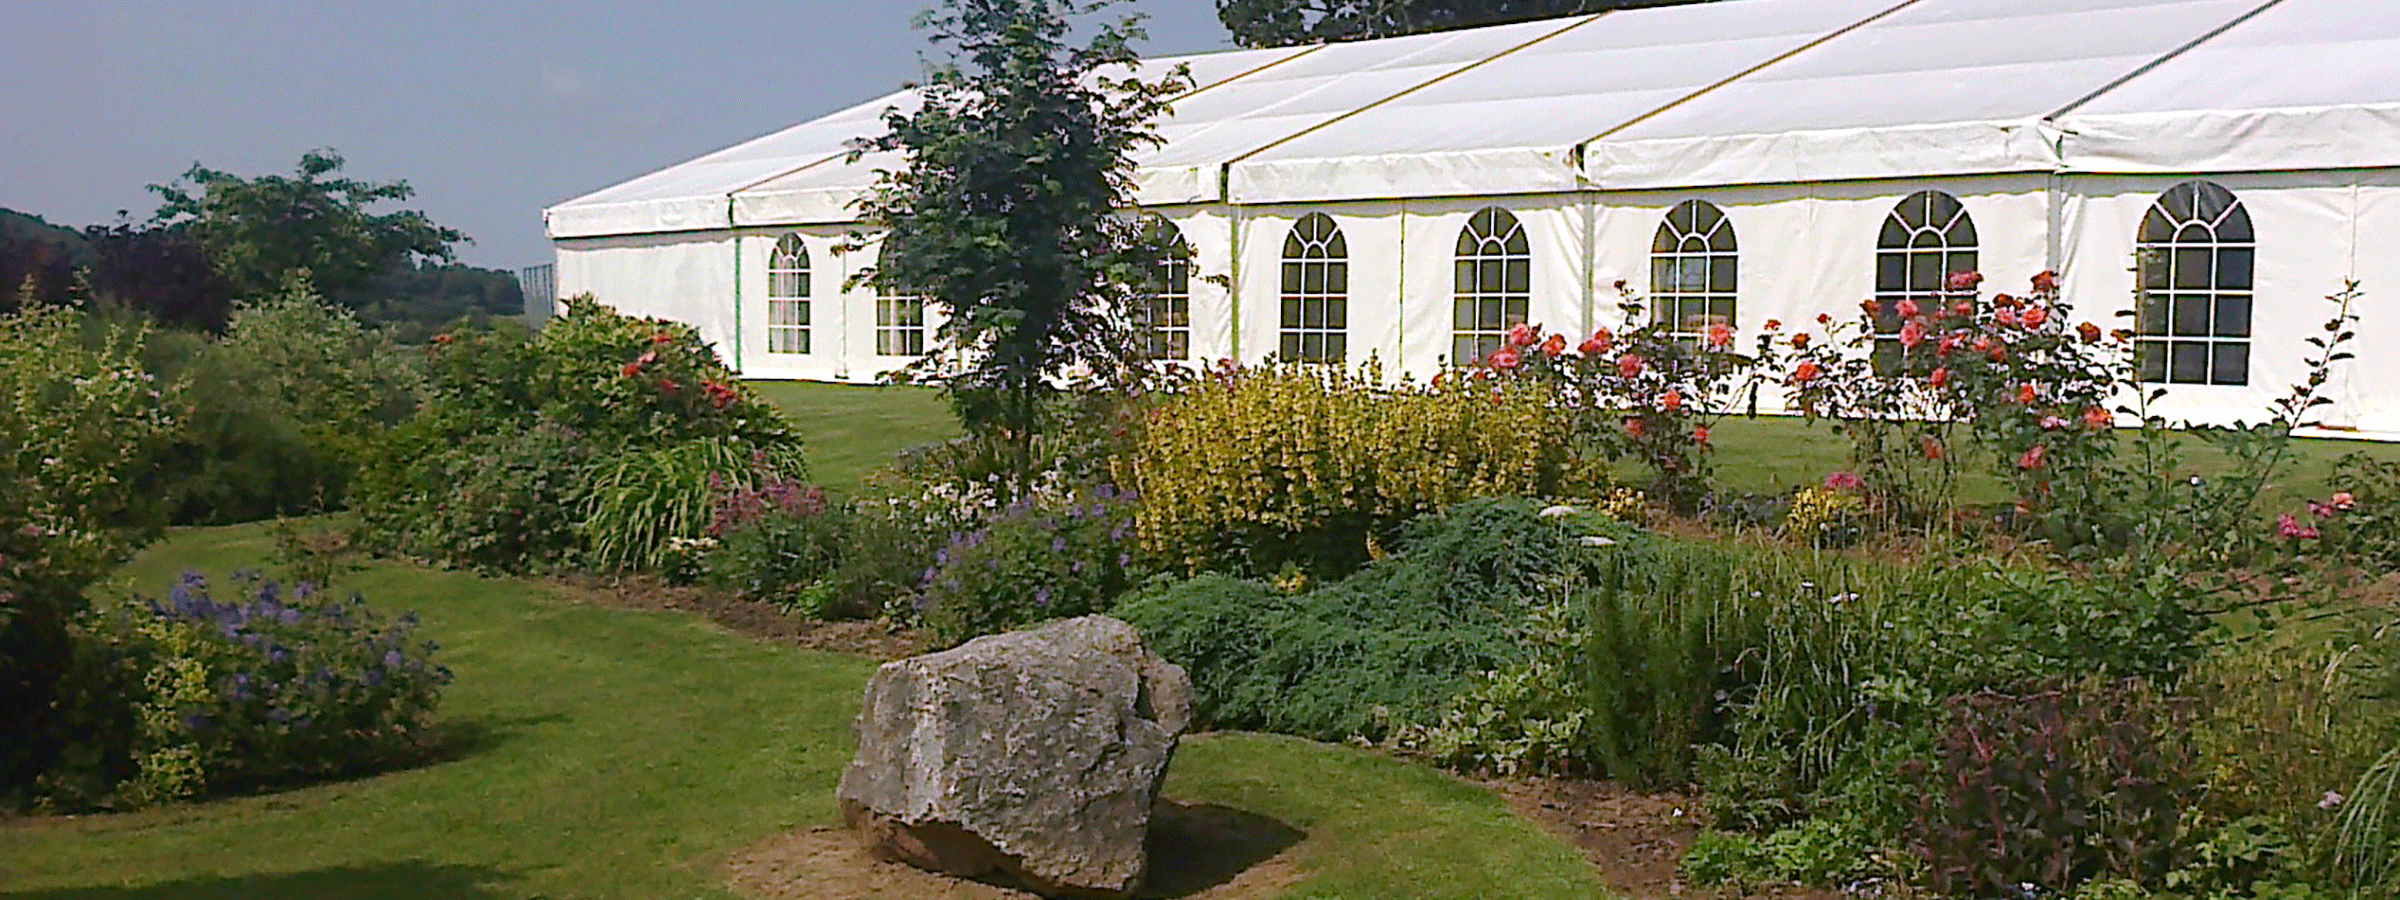 Marquee hire for any occasion - Leominster, Herefordshire